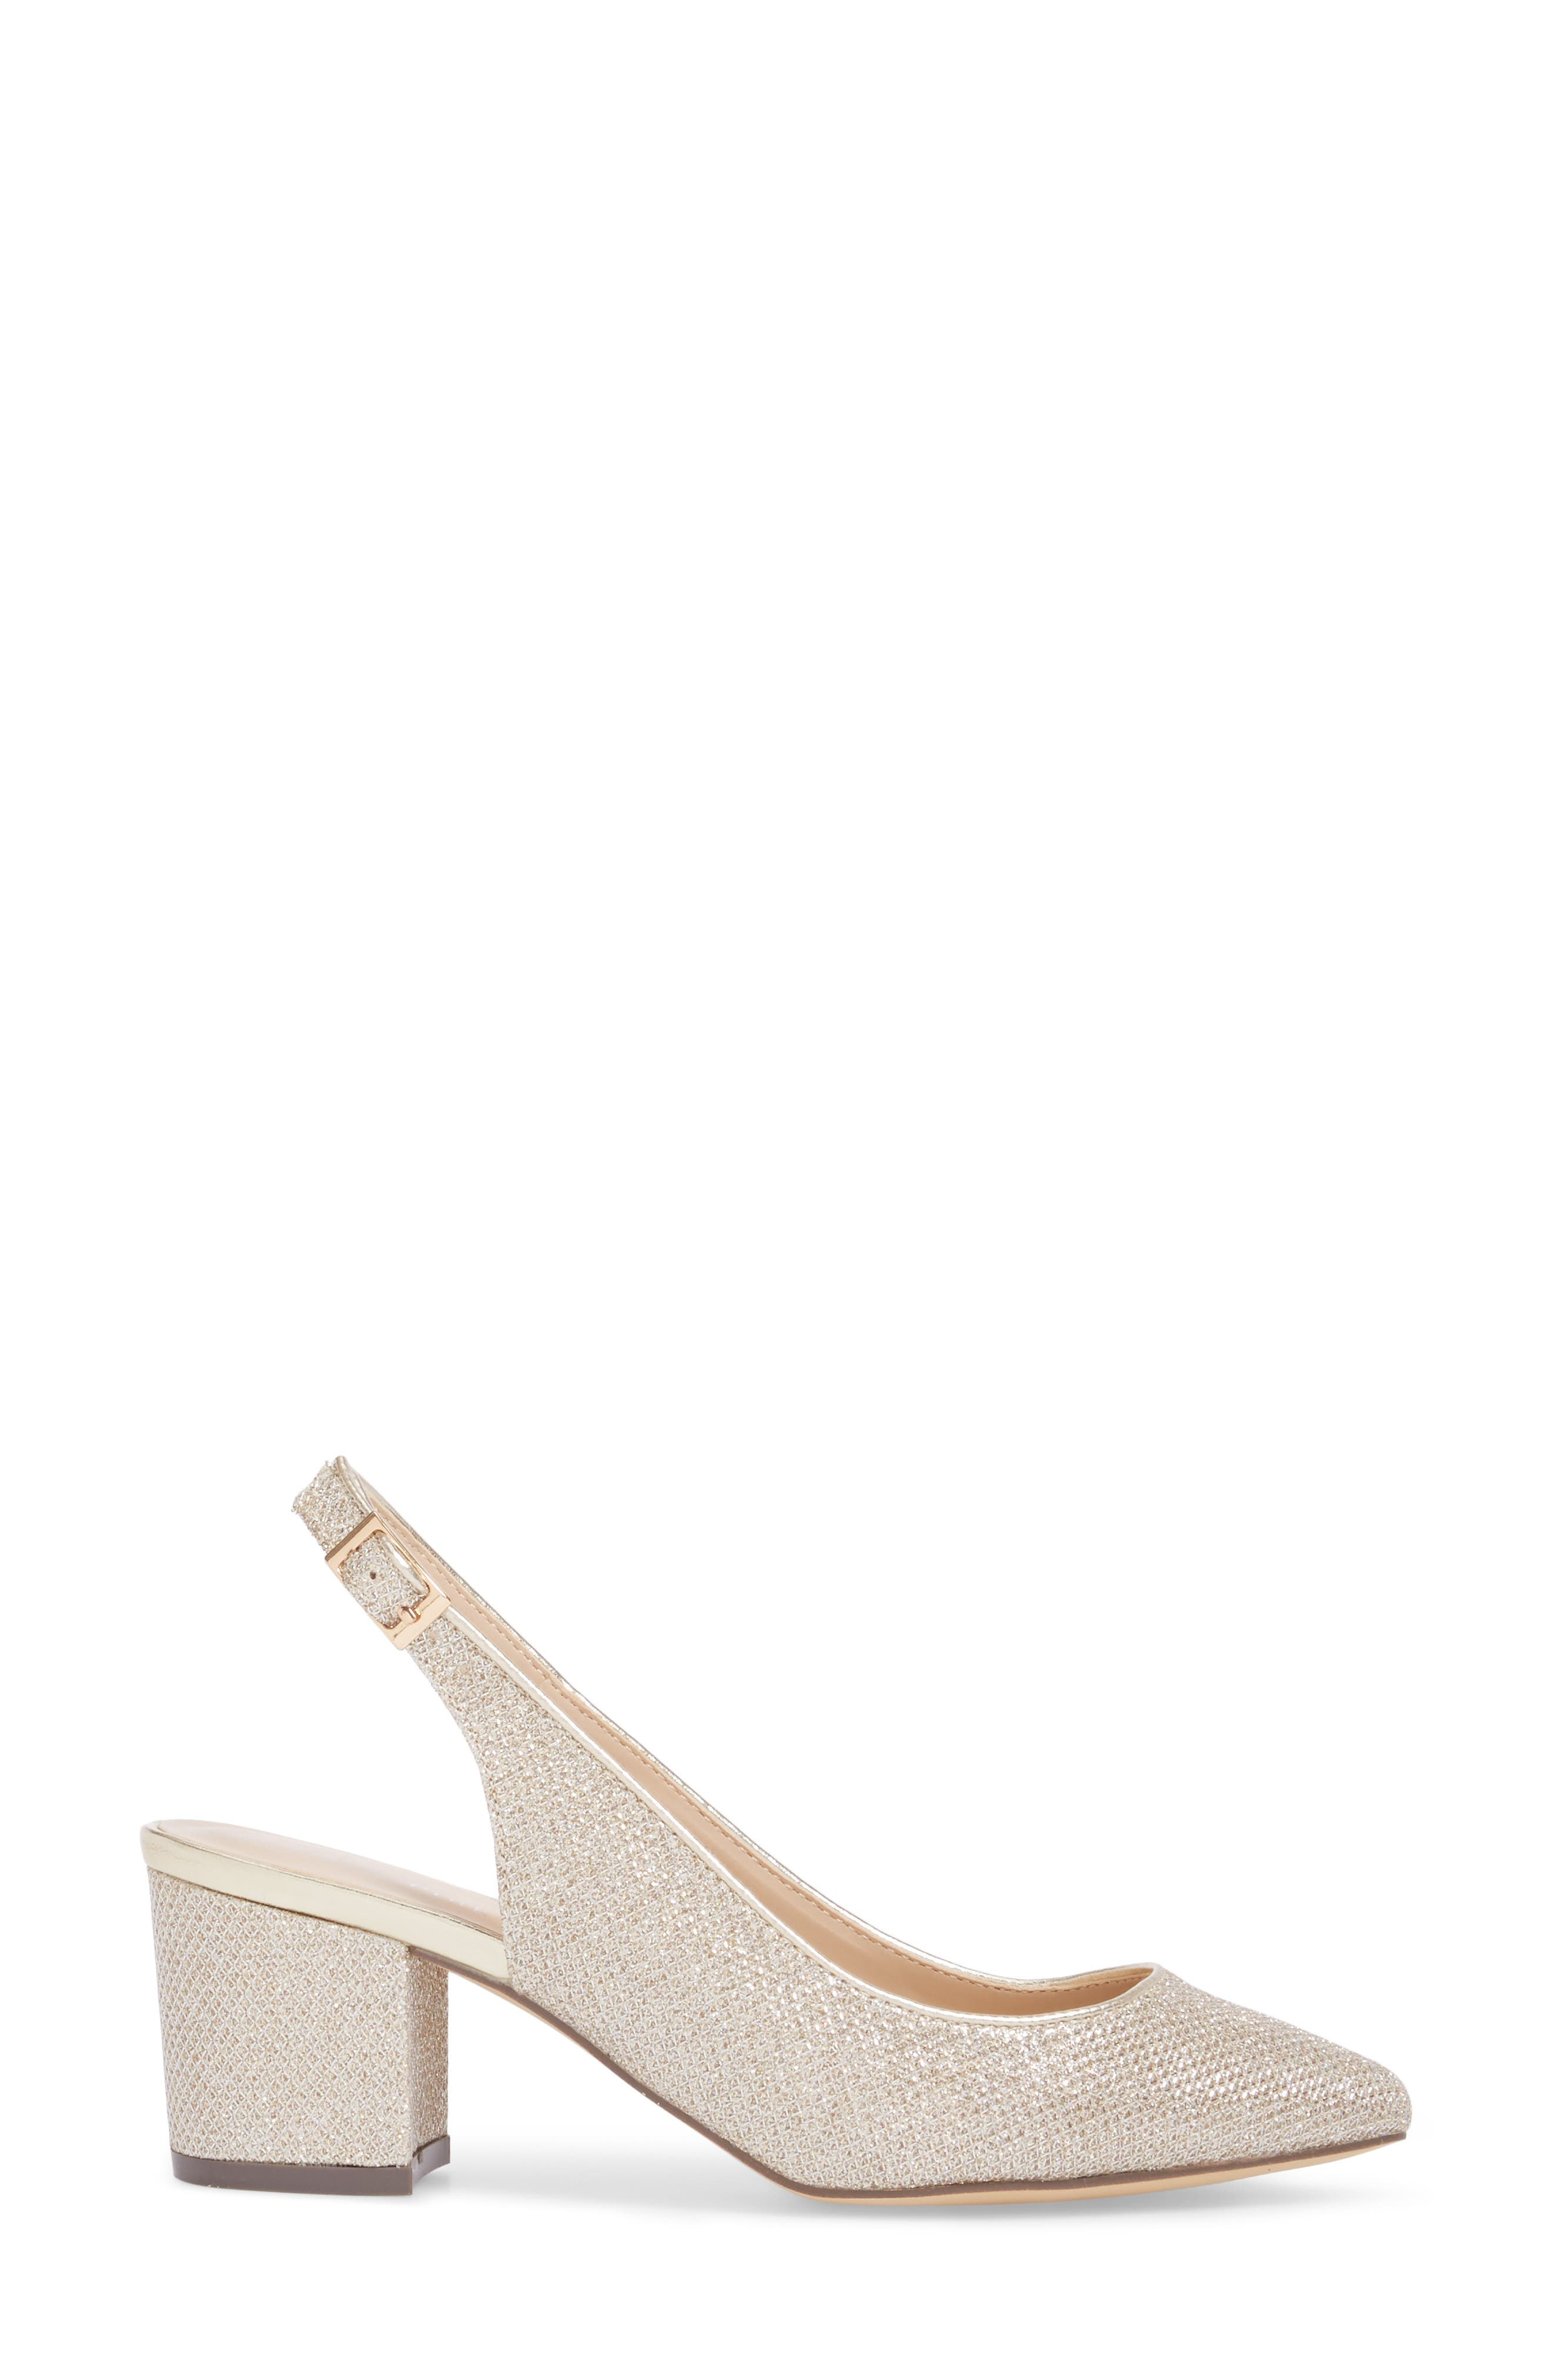 Aubree Slingback Pump,                             Alternate thumbnail 3, color,                             Champagne Glitter